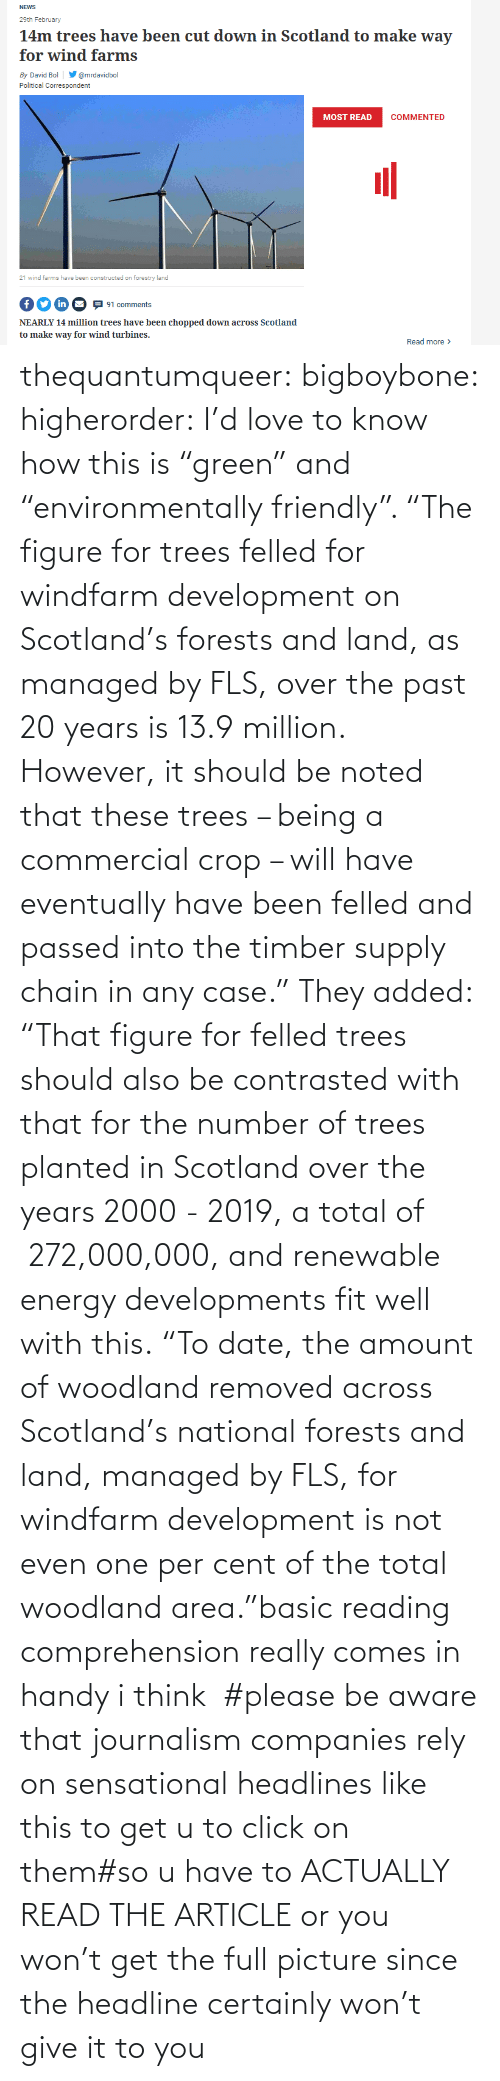 """Area: thequantumqueer: bigboybone:  higherorder: I'd love to know how this is """"green"""" and """"environmentally friendly"""".  """"The figure for trees felled for windfarm development on Scotland's forests and land, as managed by FLS, over the past 20 years is 13.9 million. However, it should be noted that these trees – being a commercial crop – will have eventually have been felled and passed into the timber supply chain in any case."""" They added: """"That figure for felled trees should also be contrasted with that for the number of trees planted in Scotland over the years 2000 - 2019, a total of 272,000,000, and renewable energy developments fit well with this. """"To date, the amount of woodland removed across Scotland's national forests and land, managed by FLS, for windfarm development is not even one per cent of the total woodland area.""""basic reading comprehension really comes in handy i think  #please be aware that journalism companies rely on sensational headlines like this to get u to click on them#so u have to ACTUALLY READ THE ARTICLE or you won't get the full picture since the headline certainly won't give it to you"""